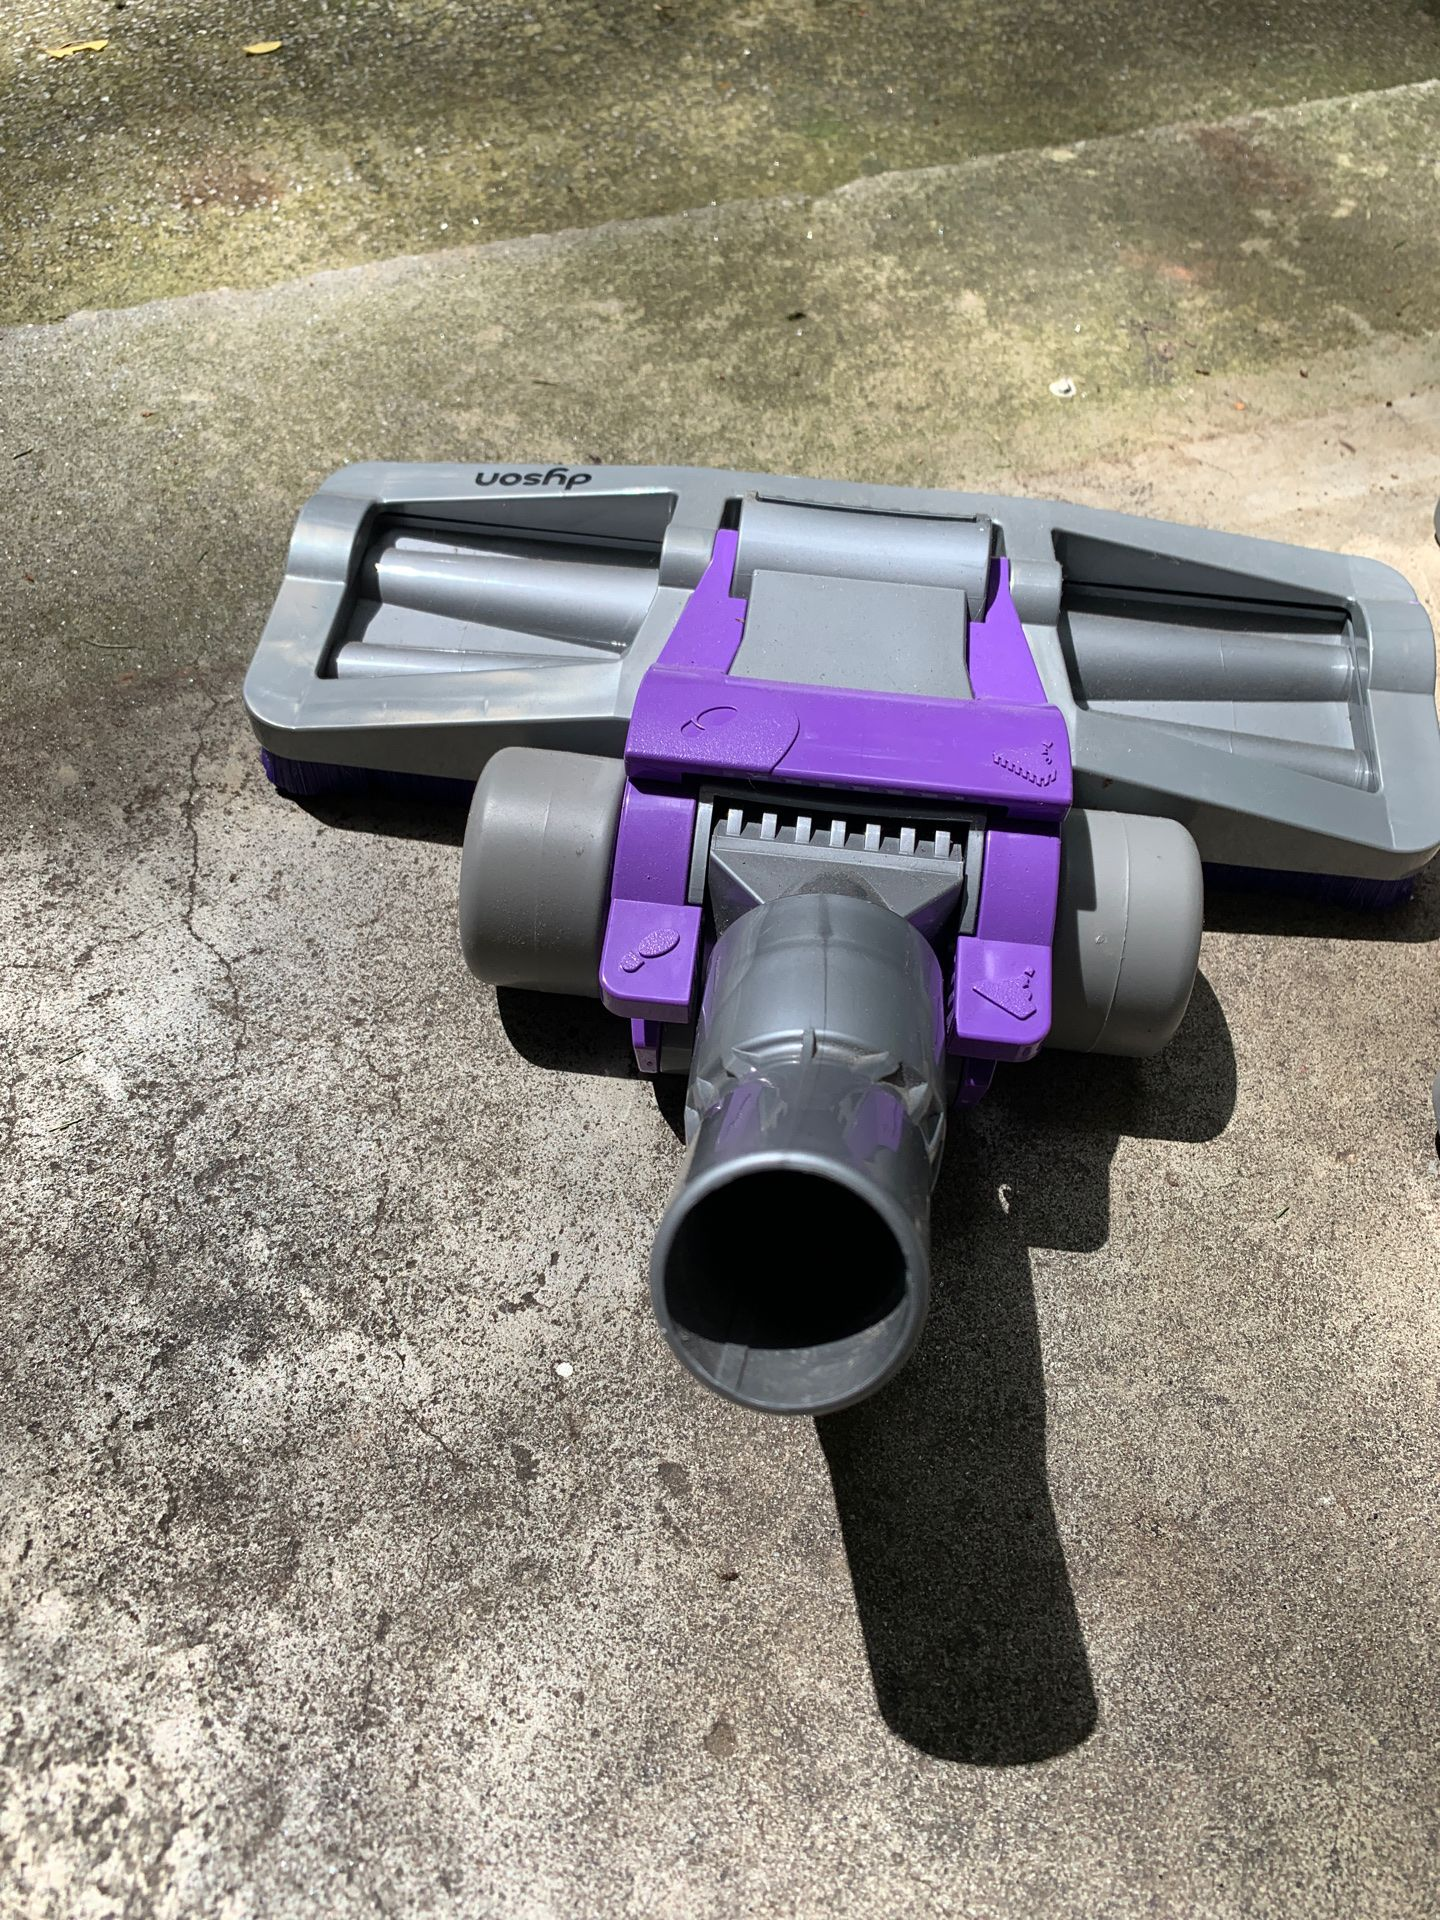 Dyson vacuum accessories as pictured, like new